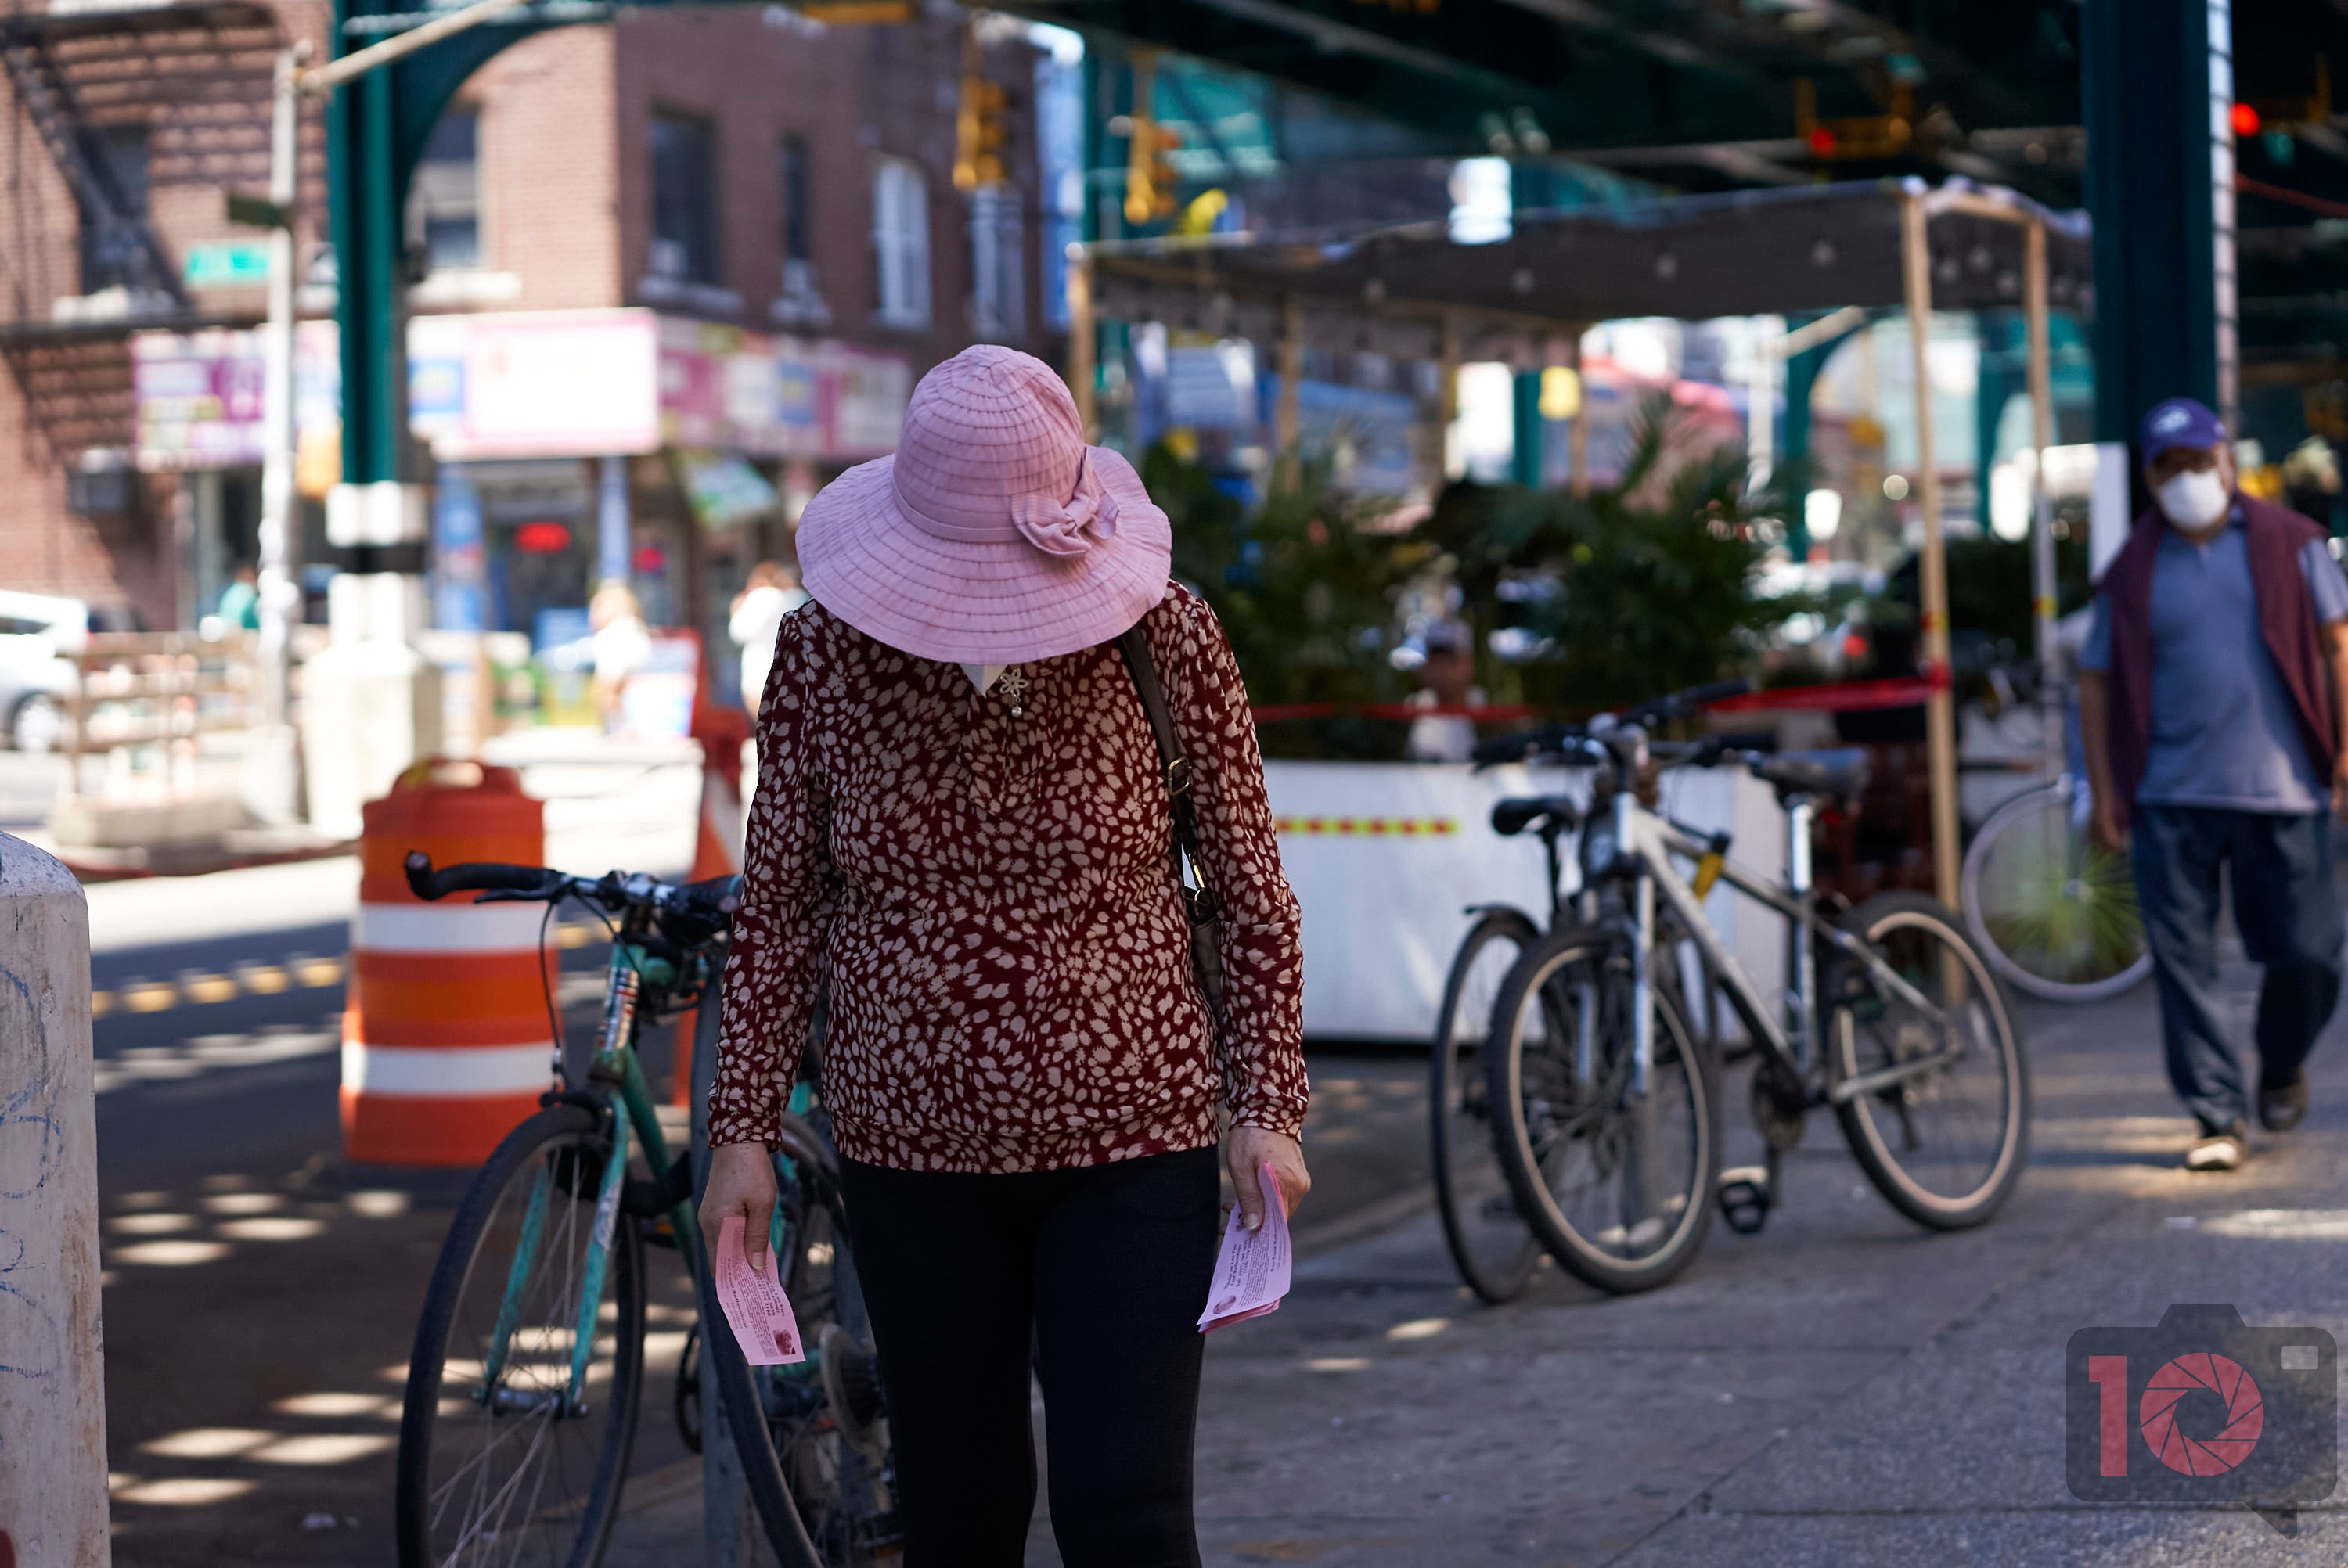 The Sony a7s III Has Epic Autofocus for Street Photography